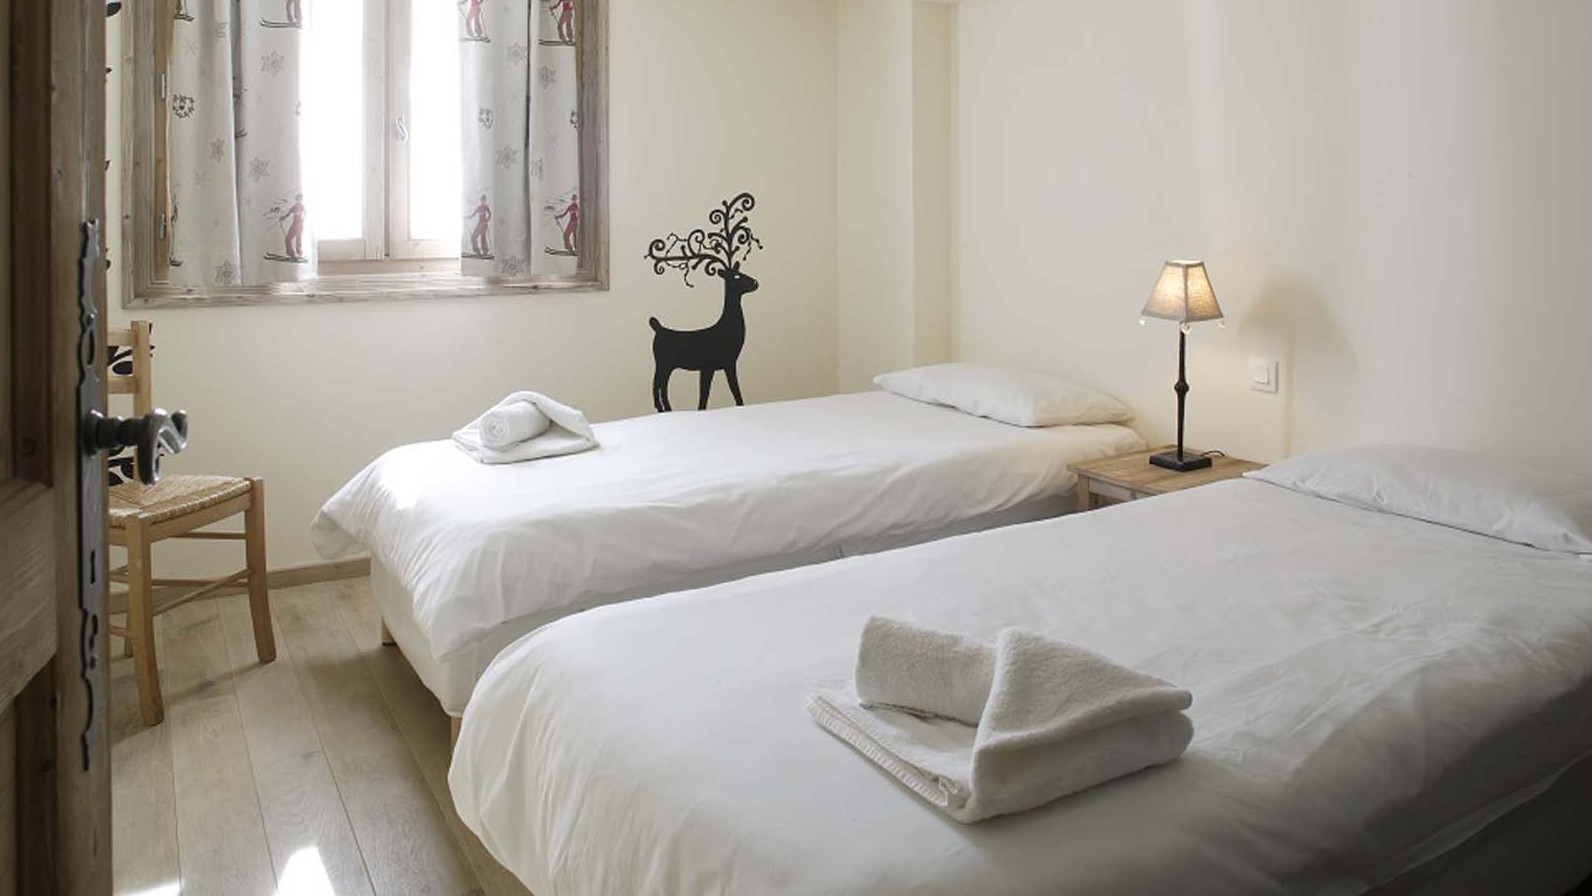 Chalet Premiere Neige bed, Val D'Isere